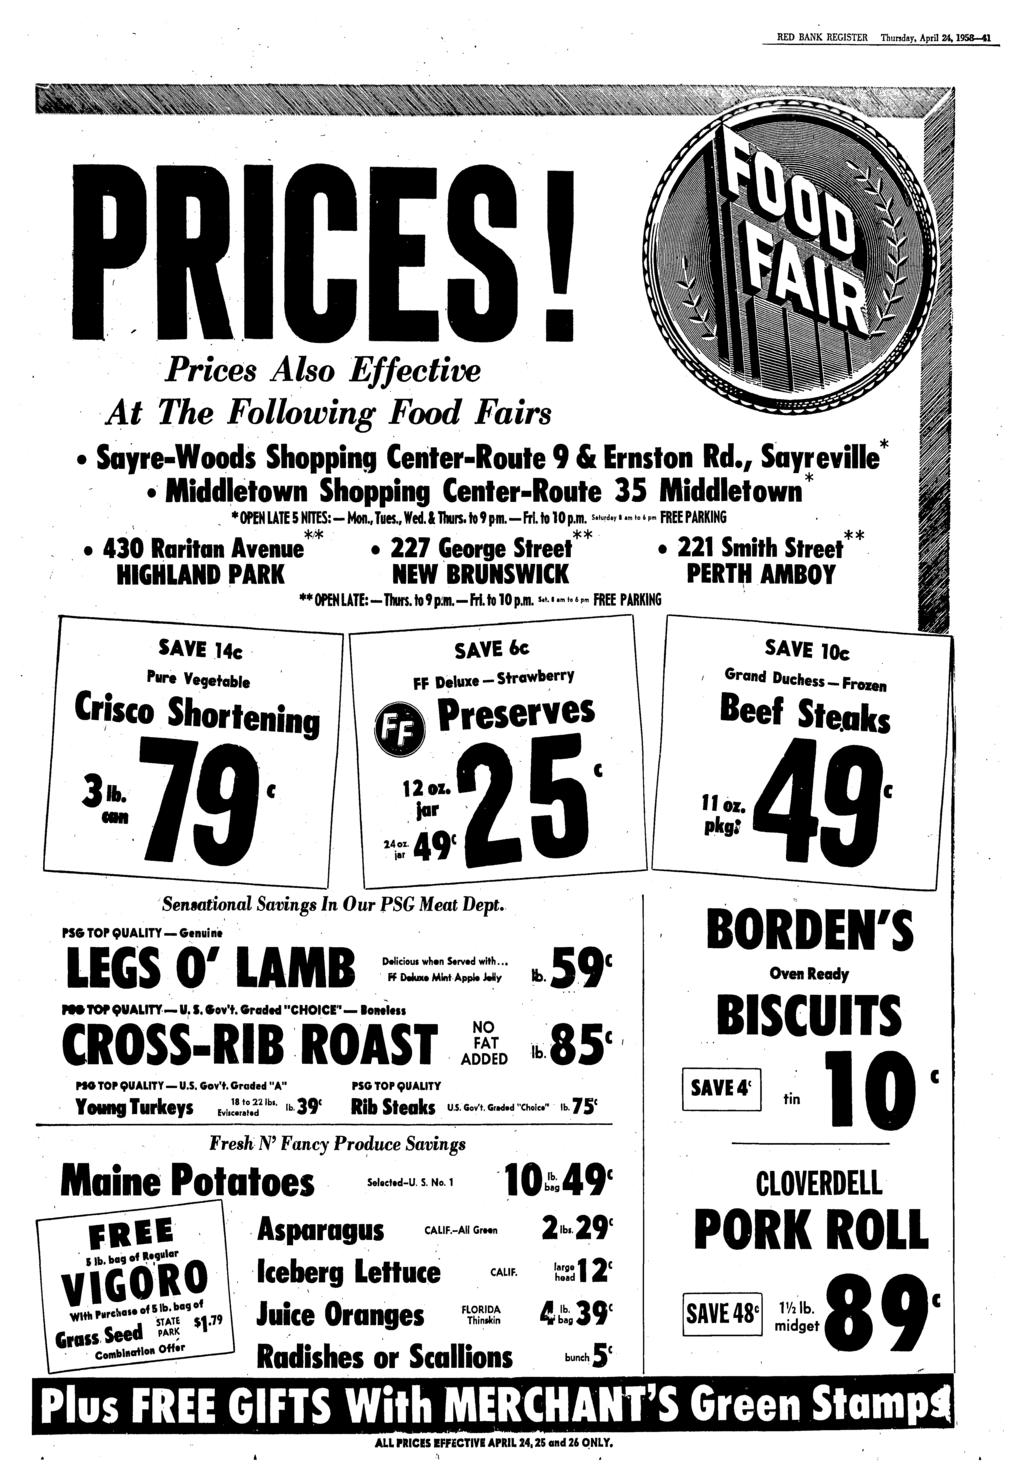 REGISTER Thursday, April 24,1958-41 Prices Also Effective At The Following Food Fairs Sayre-Woods Shopping Center-Route 9 & Ernston Rd., Sayreville Middletown Shopping Center-Route 35 Middletown*.